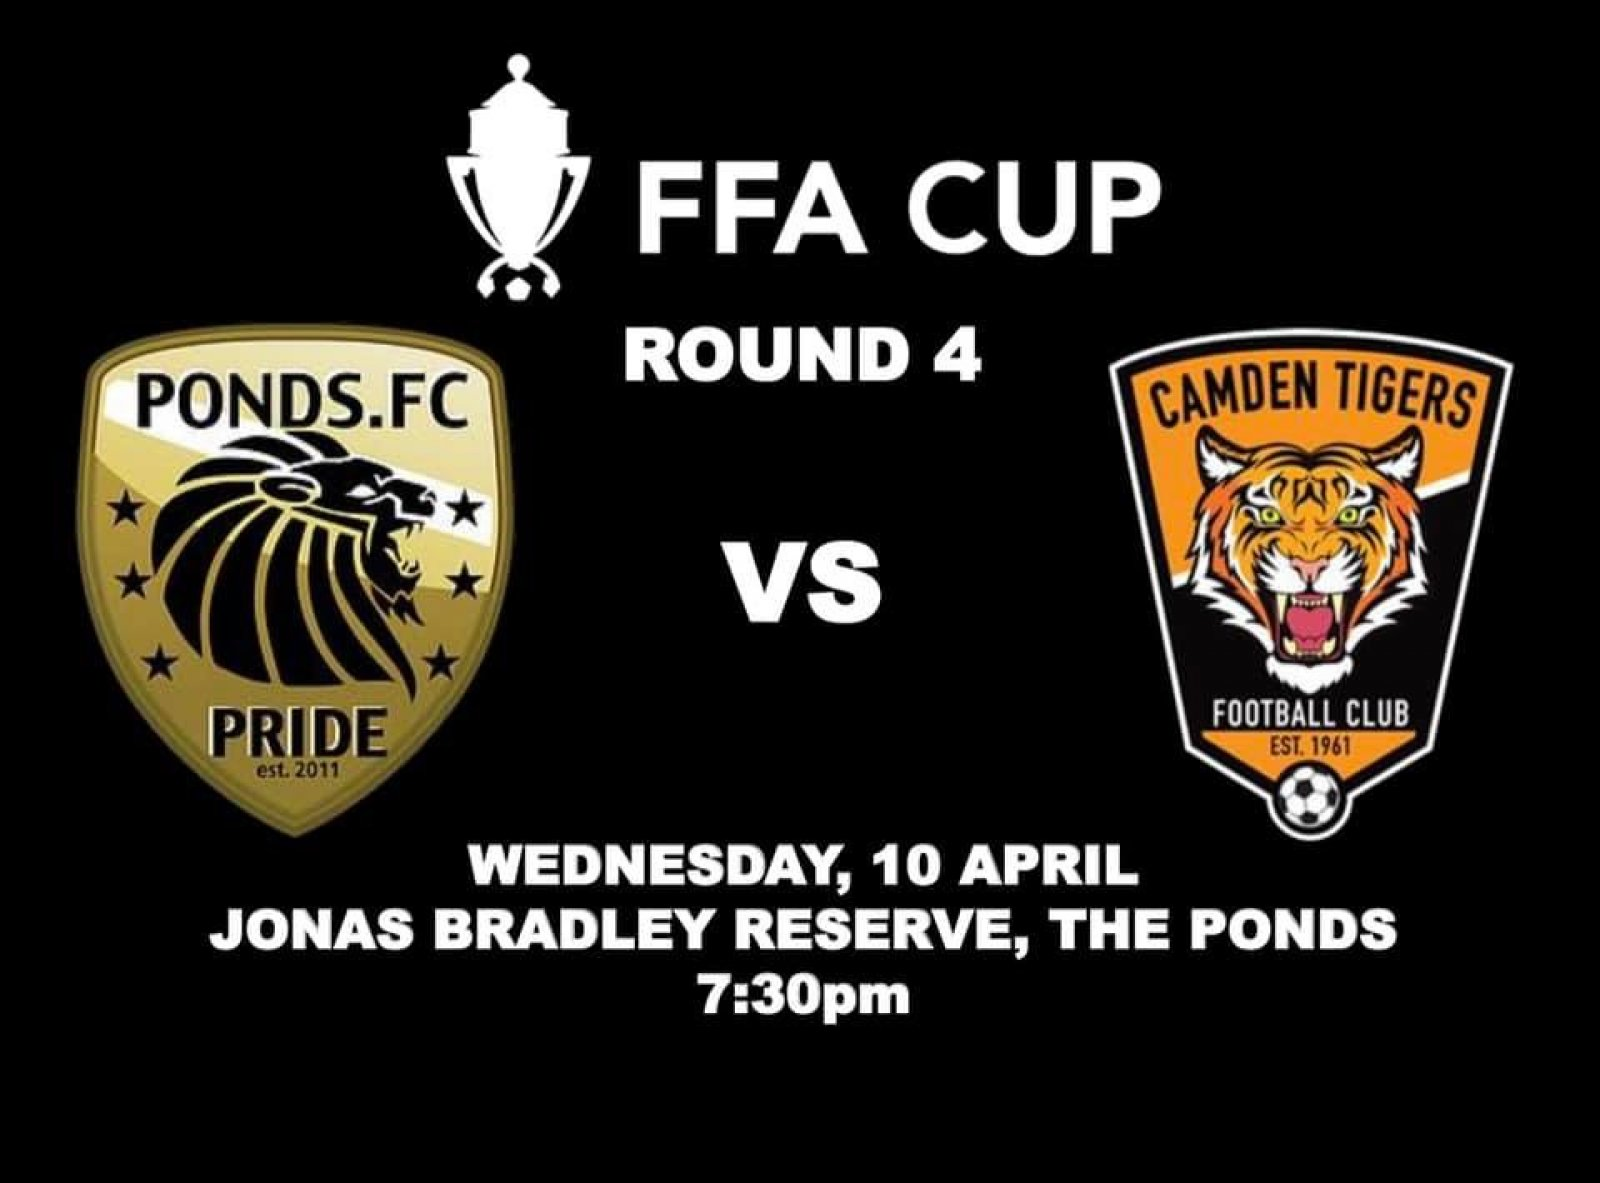 It's confirmed, our Advanced Solar Premier League Side will be taking on NPL outfit, Camden Tigers Football Club in our Round 4 FFA clash!